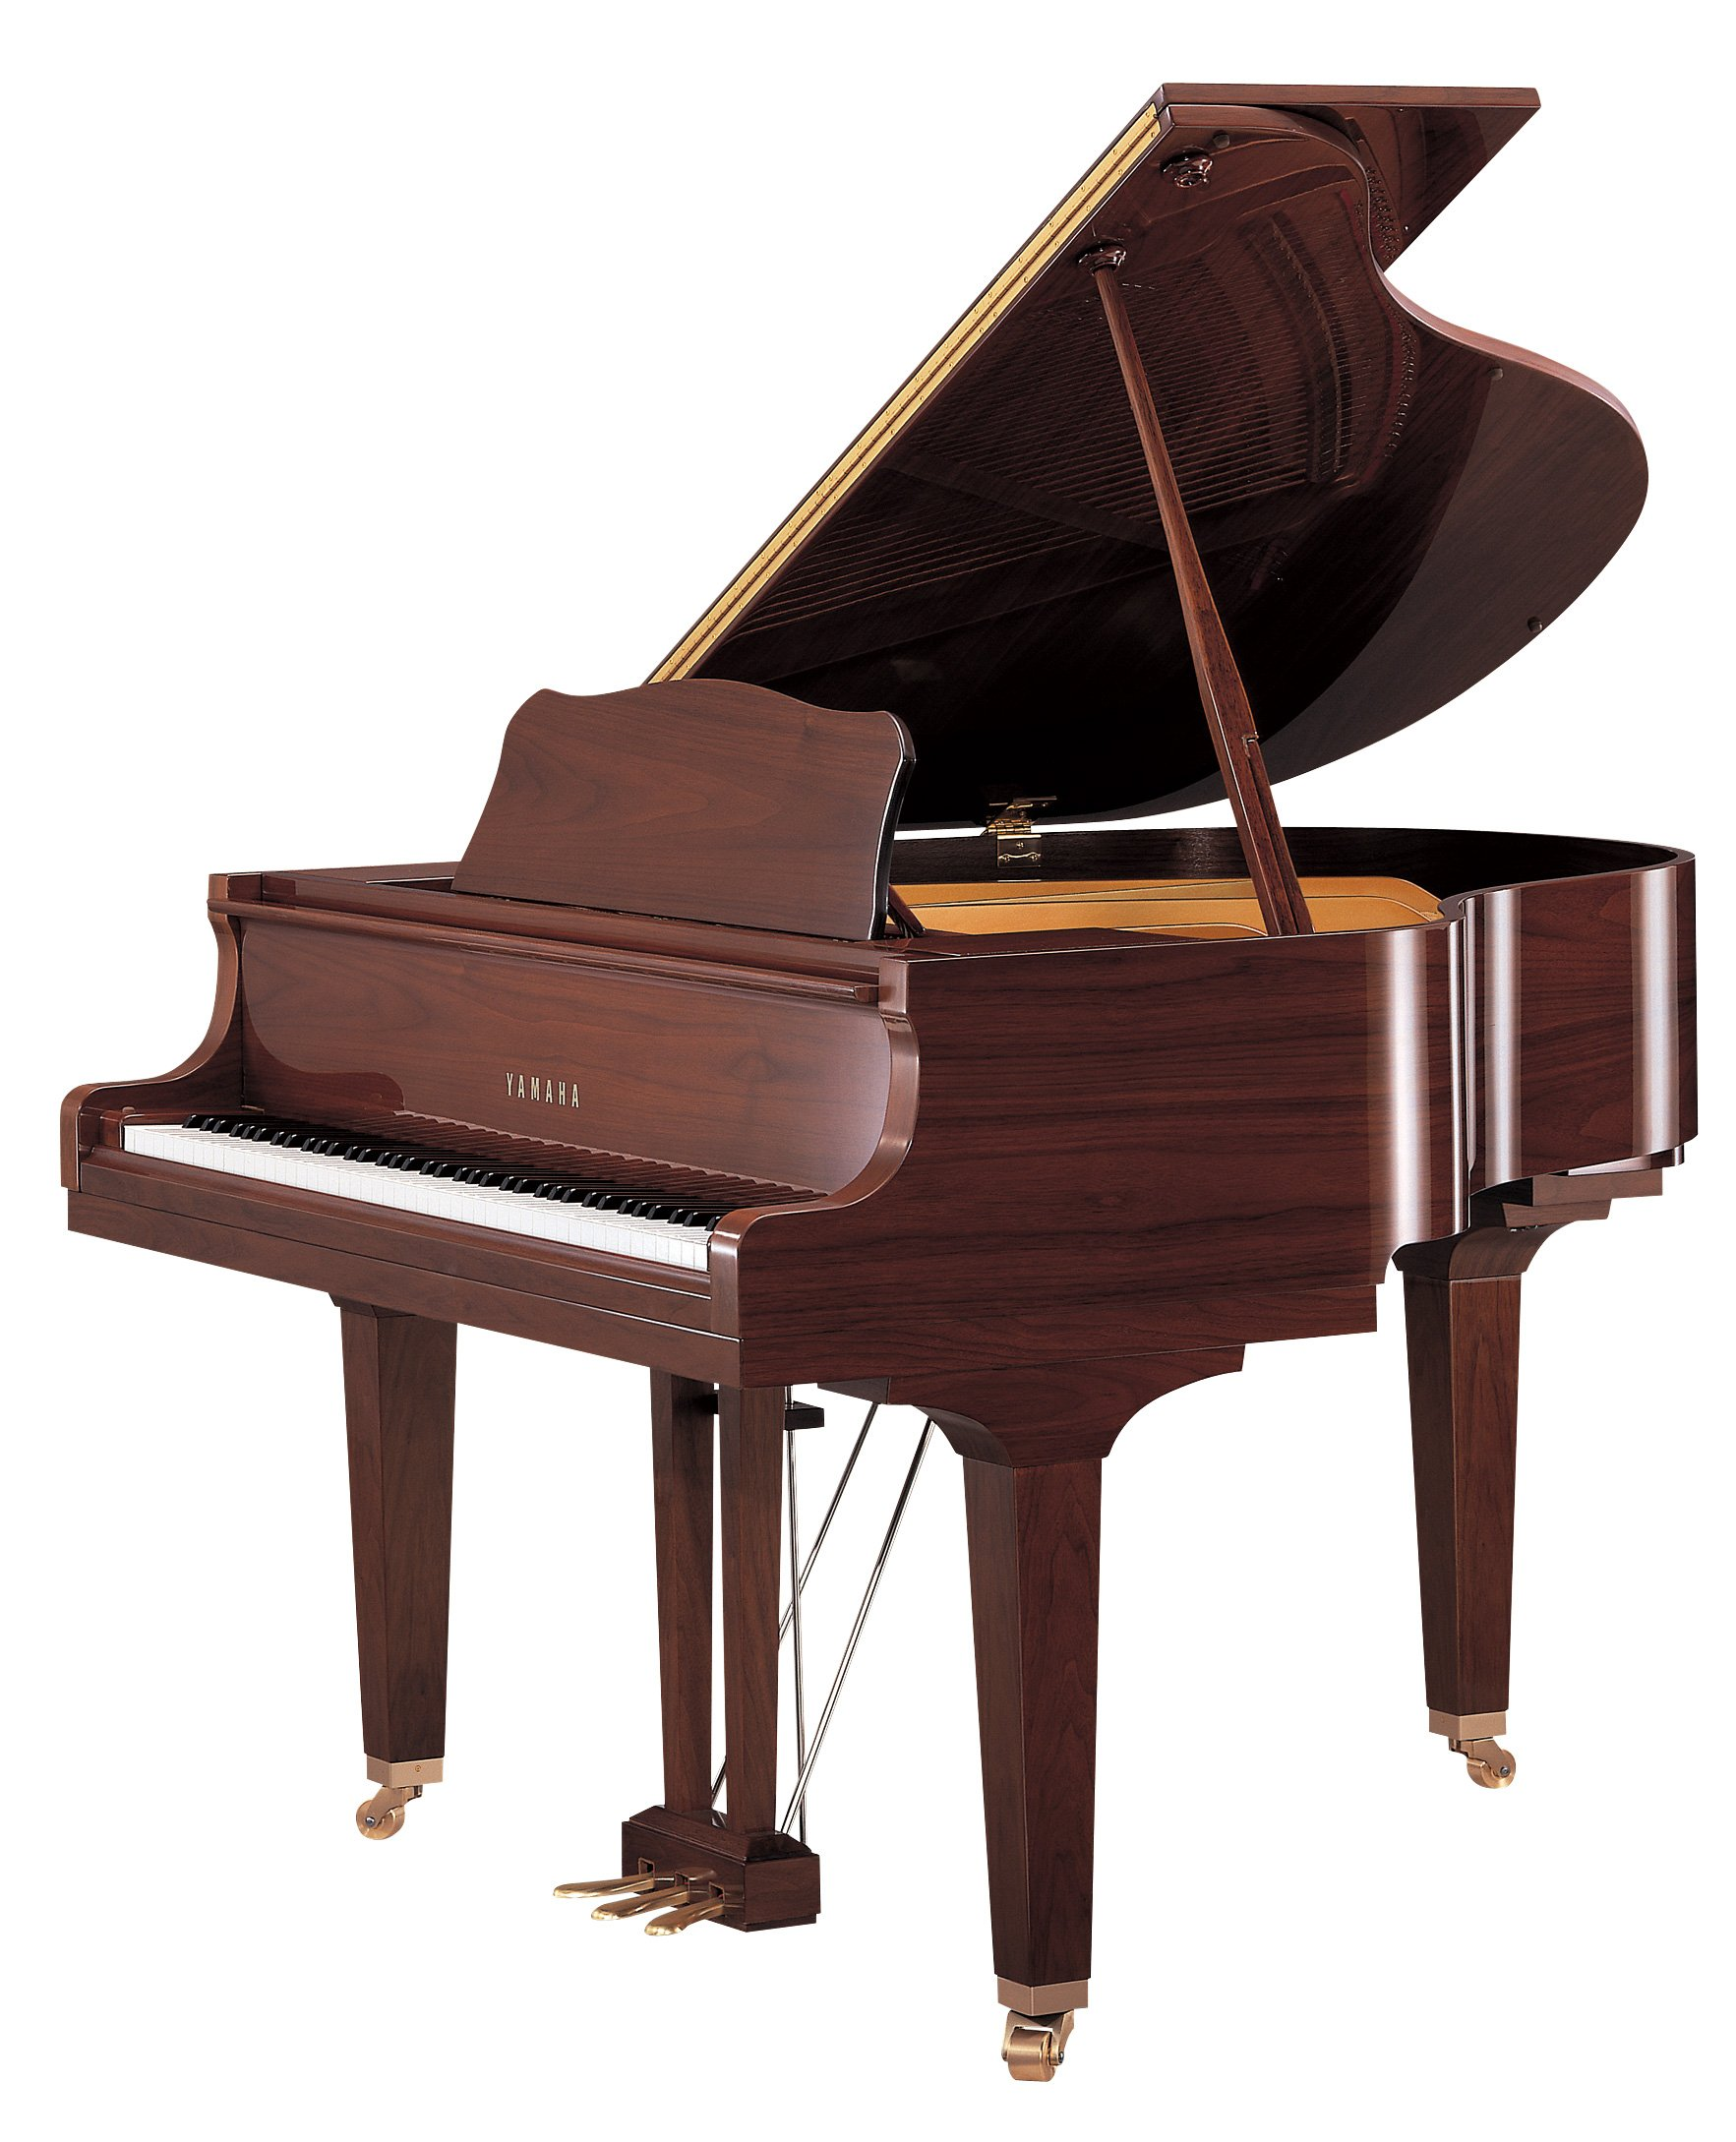 What Are the Dimensions of an Upright Piano?